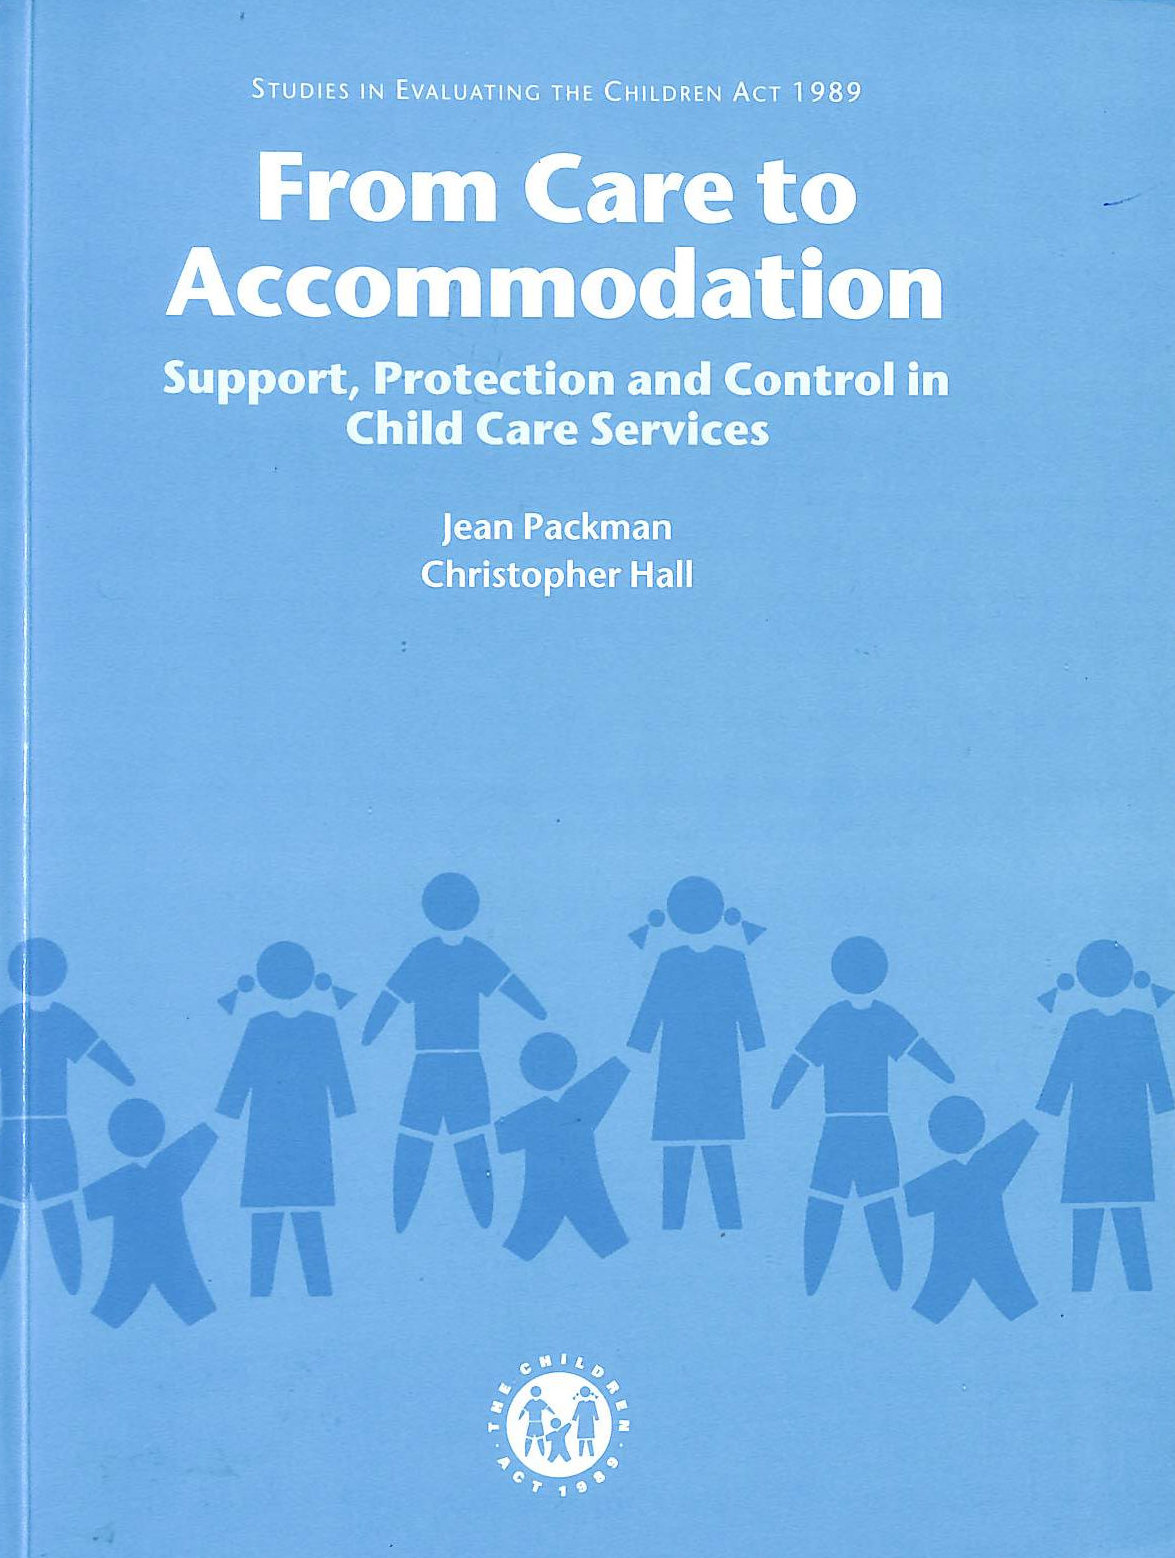 Image for From Care to Accommodation: Support, Protection and Control in Child Care Services (Studies in Evaluating the Children Act 1989)